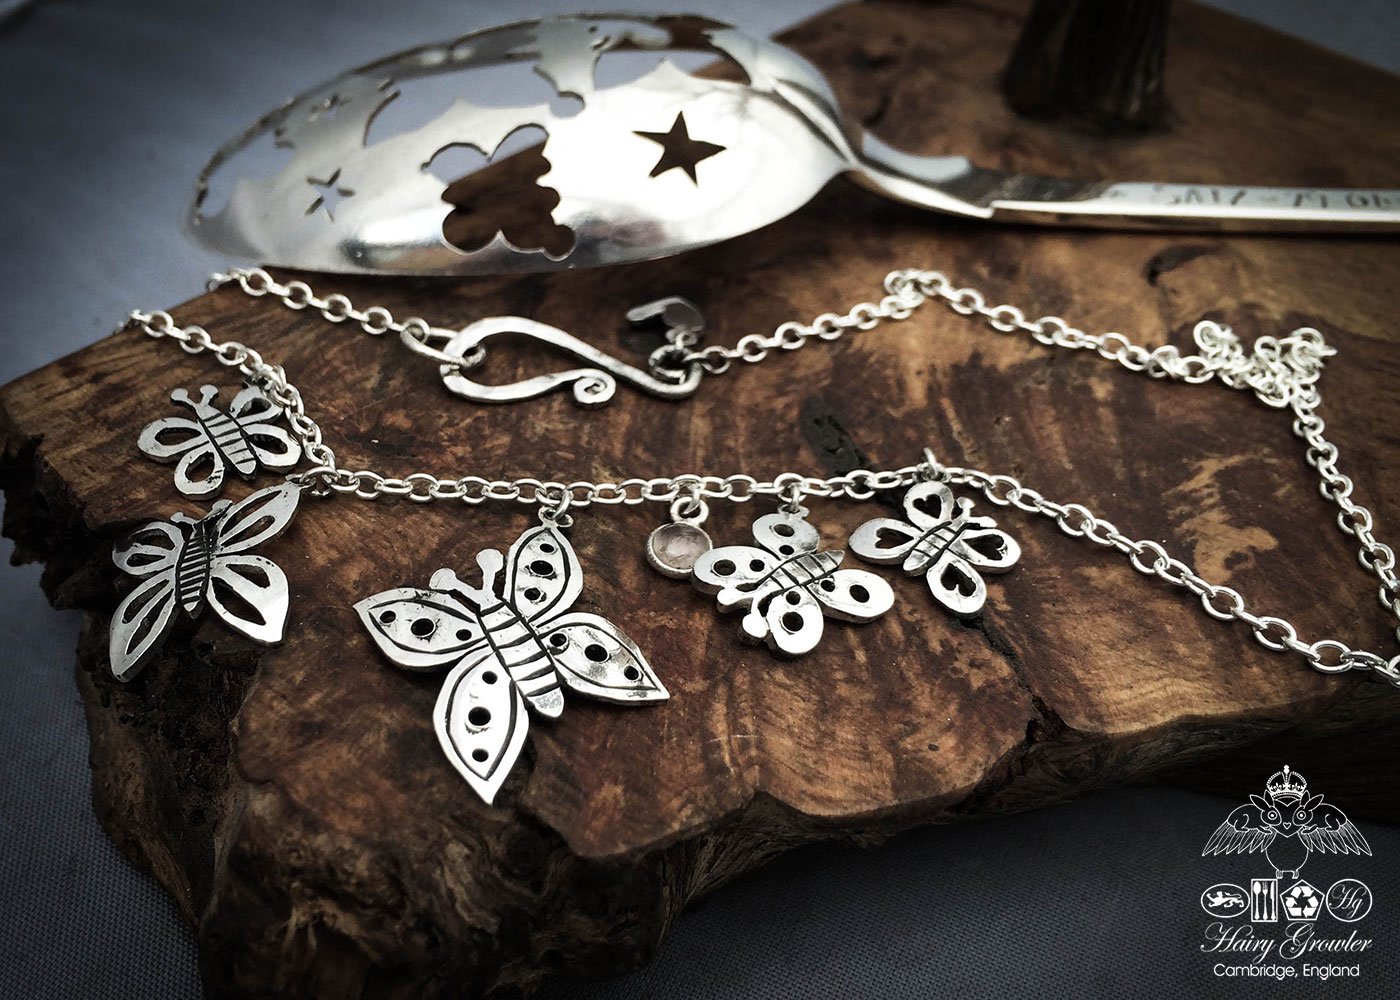 Butterfly necklace handcrafted and recycled from an antique silver spoon